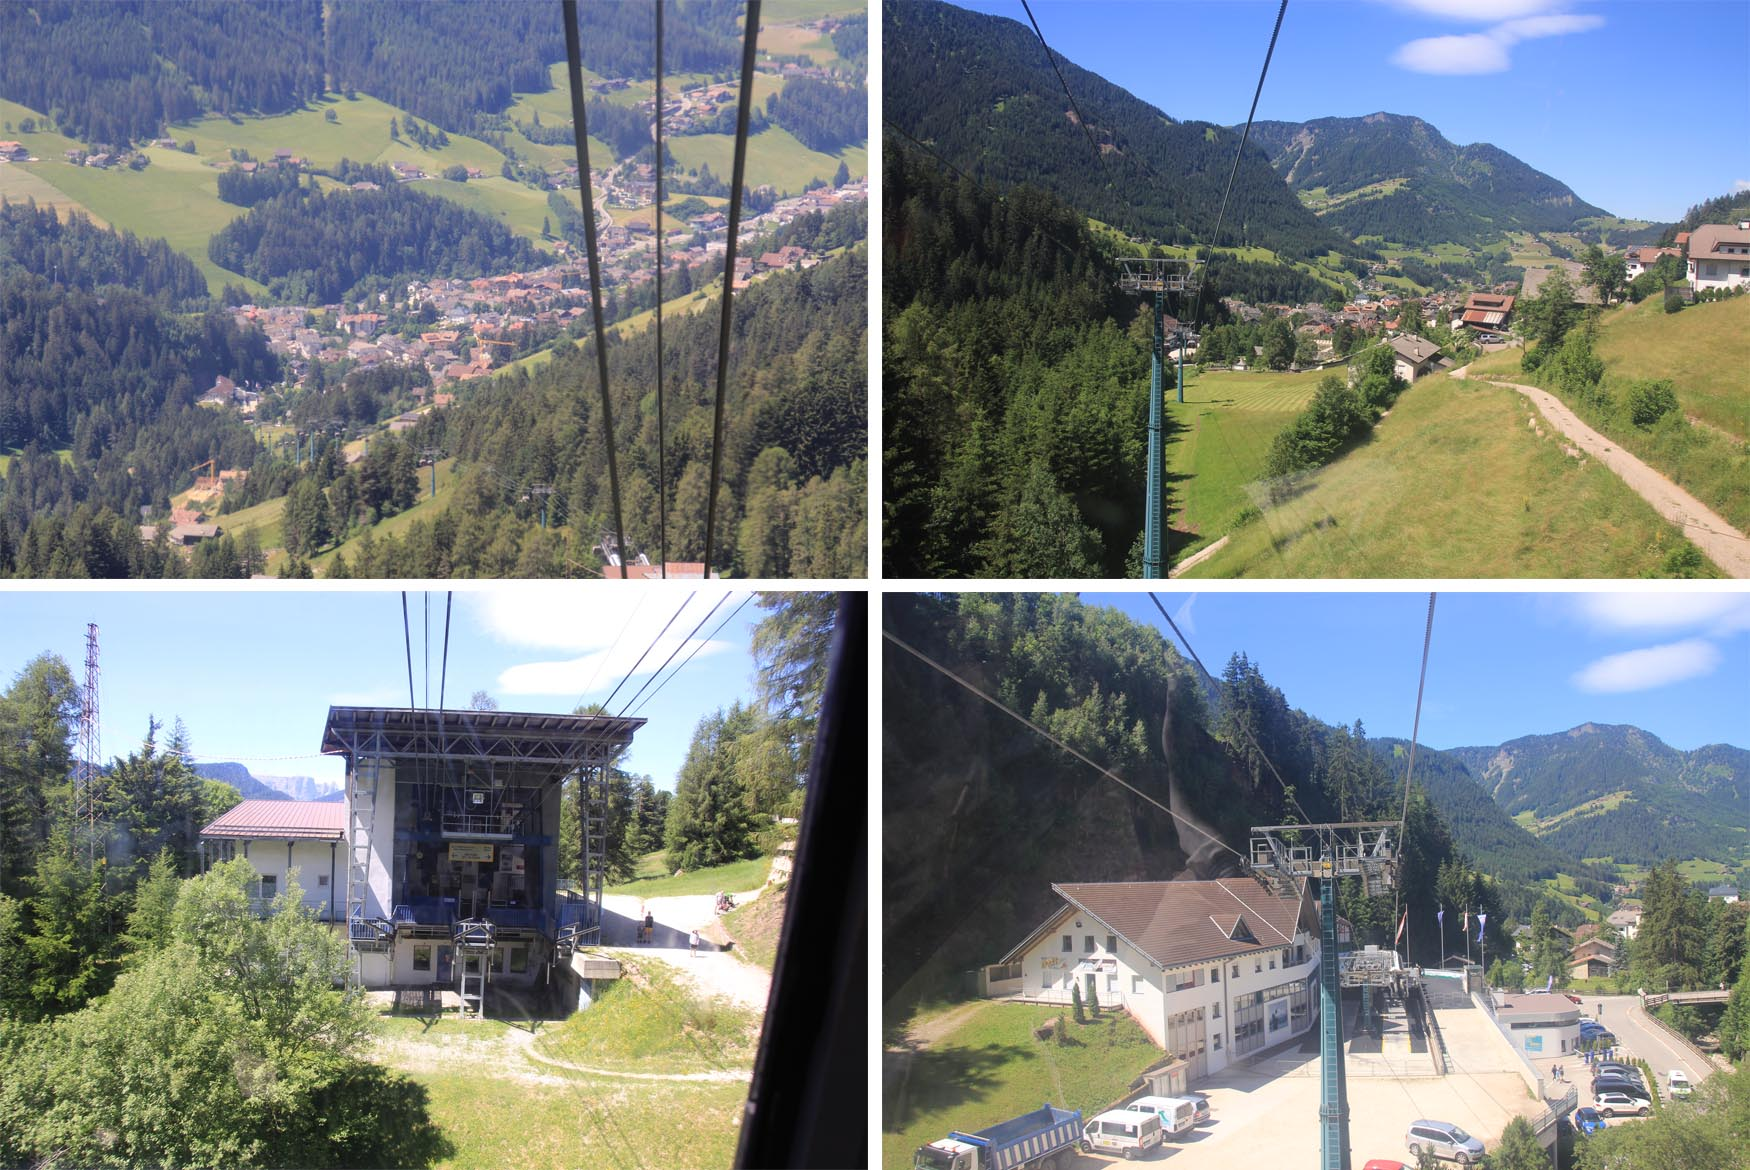 Cable car ride at Seceda Funivie